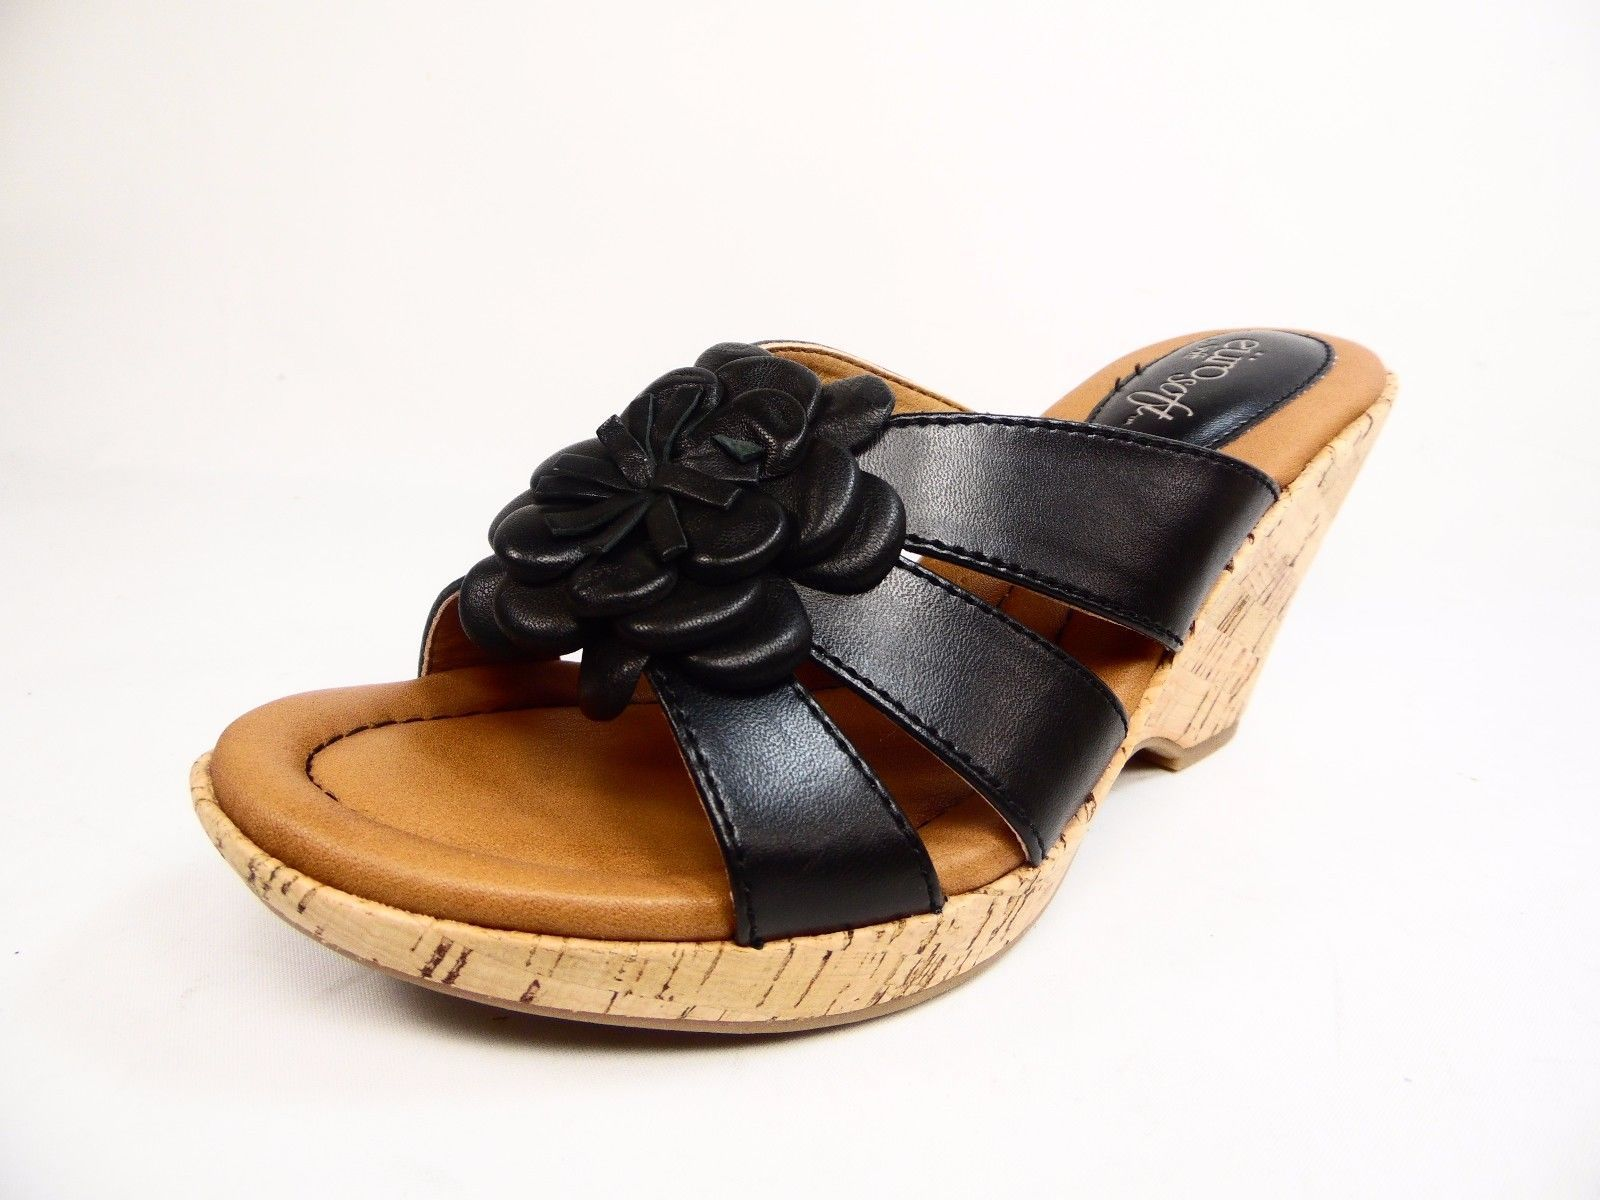 18e604765c55 Eurosoft by sofft fairley Womens Sandals and 48 similar items. 57